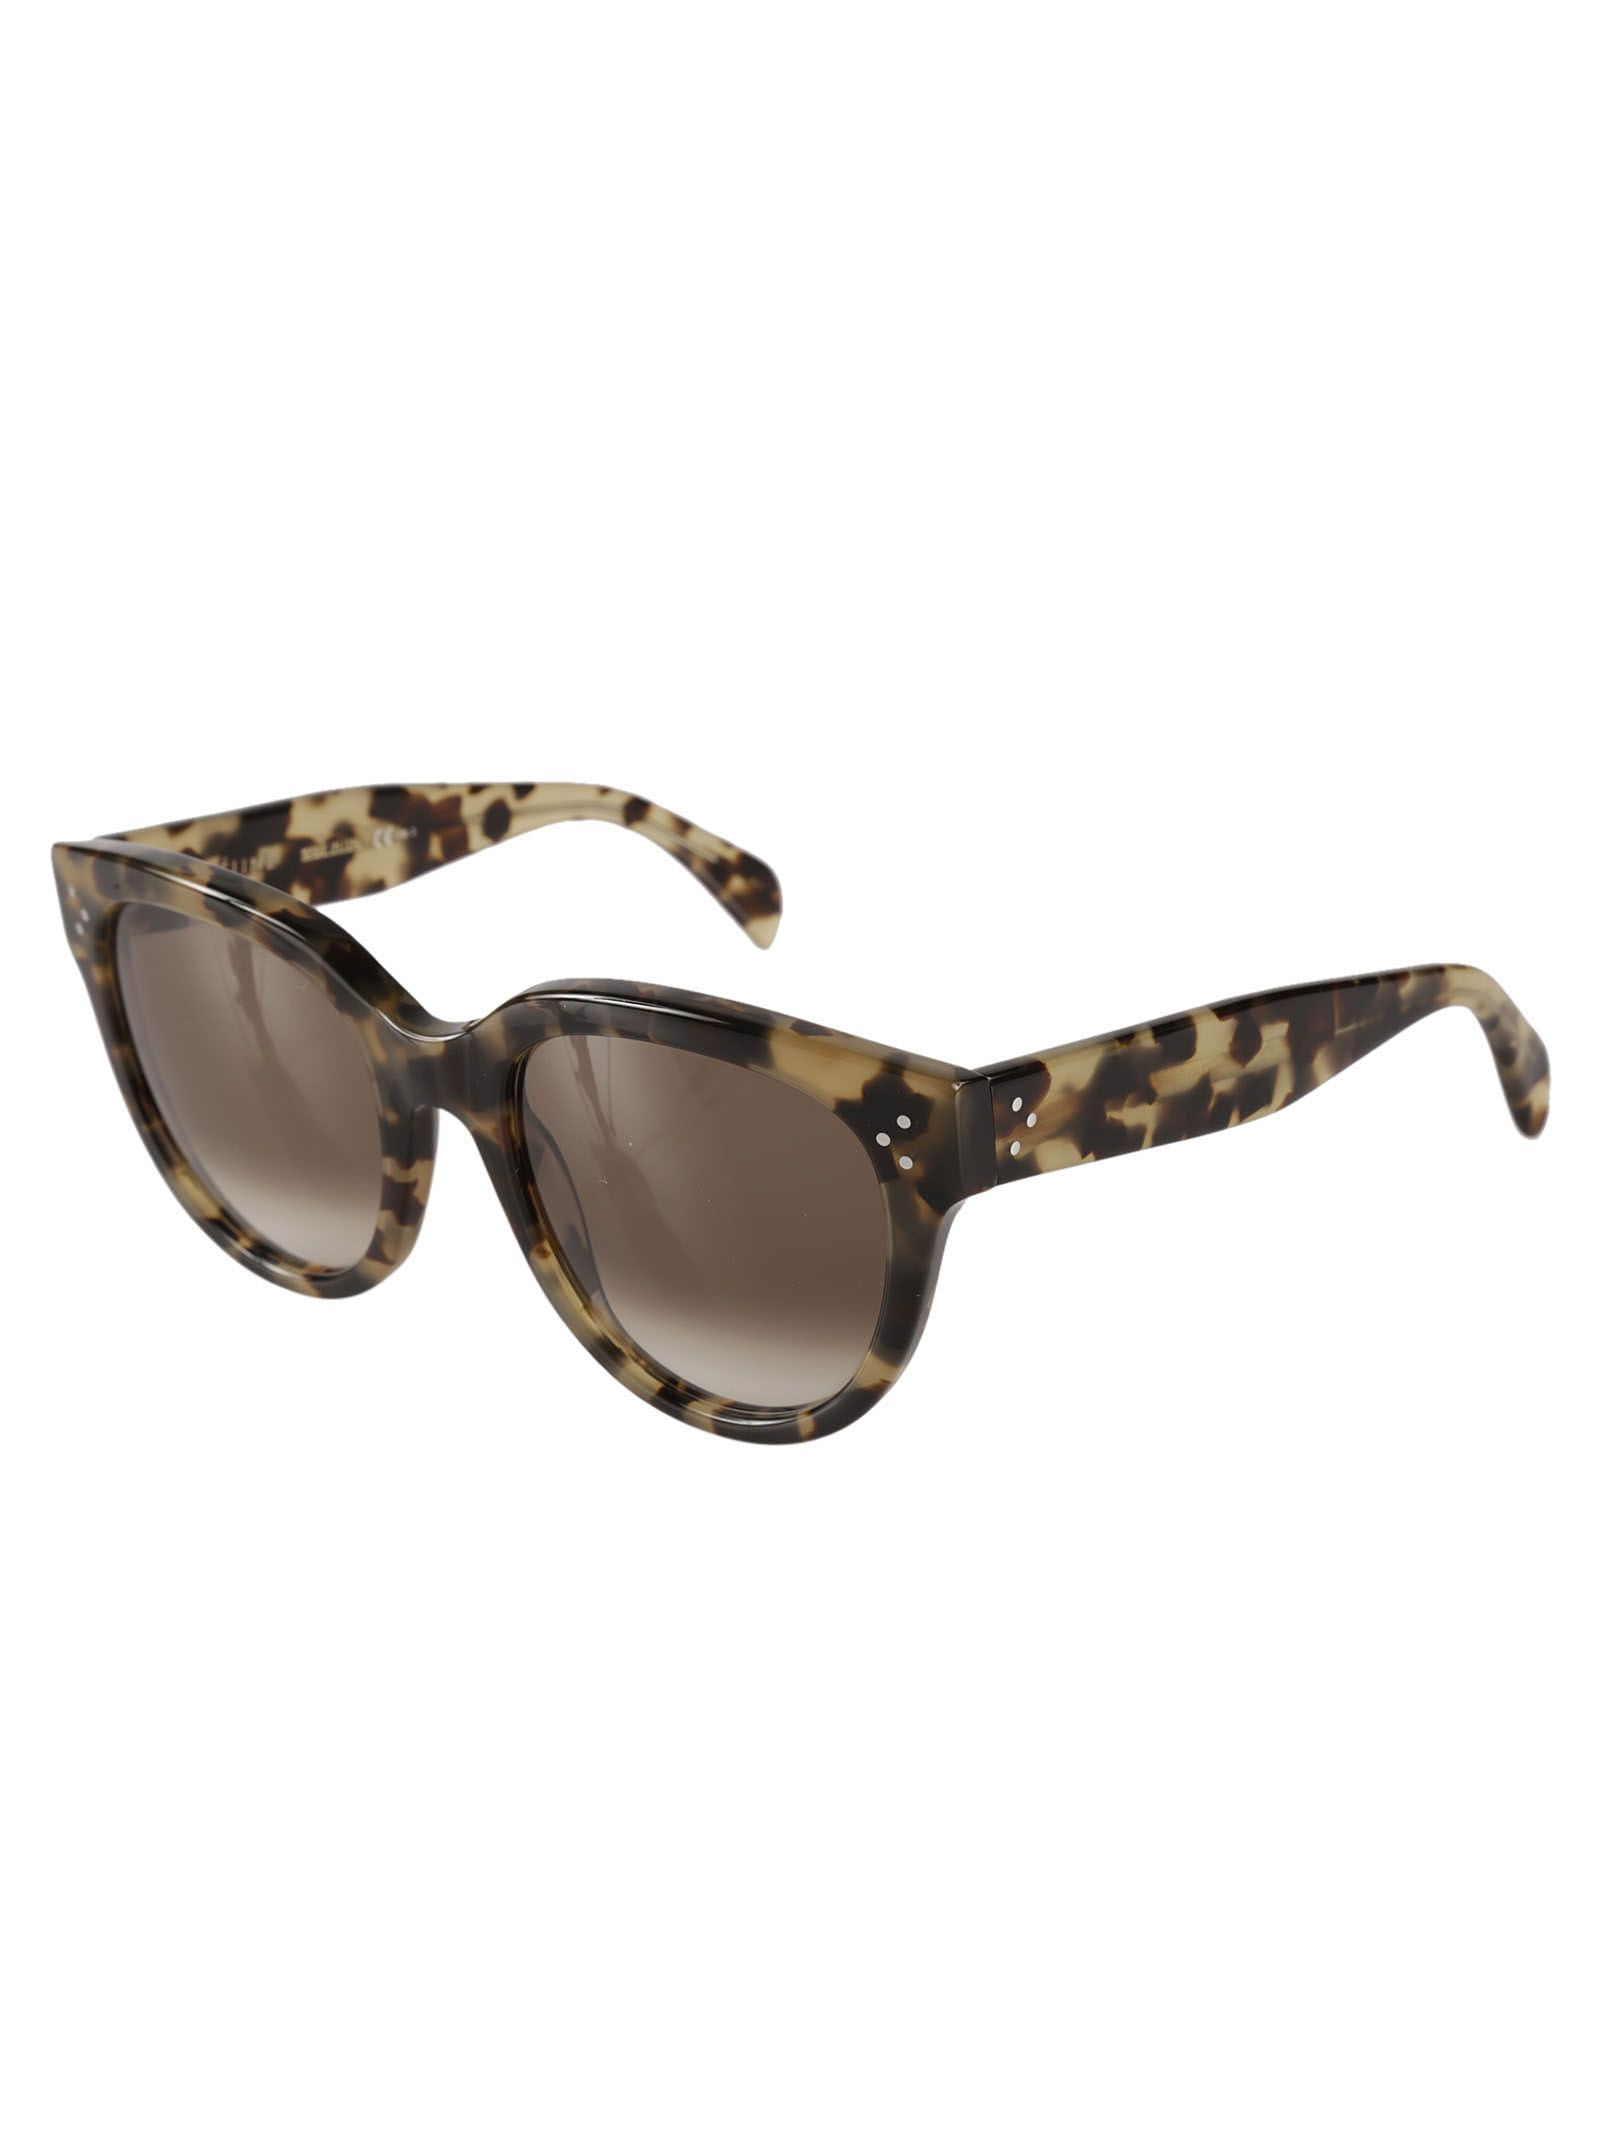 b997796a607 Celine Female Sunglasses